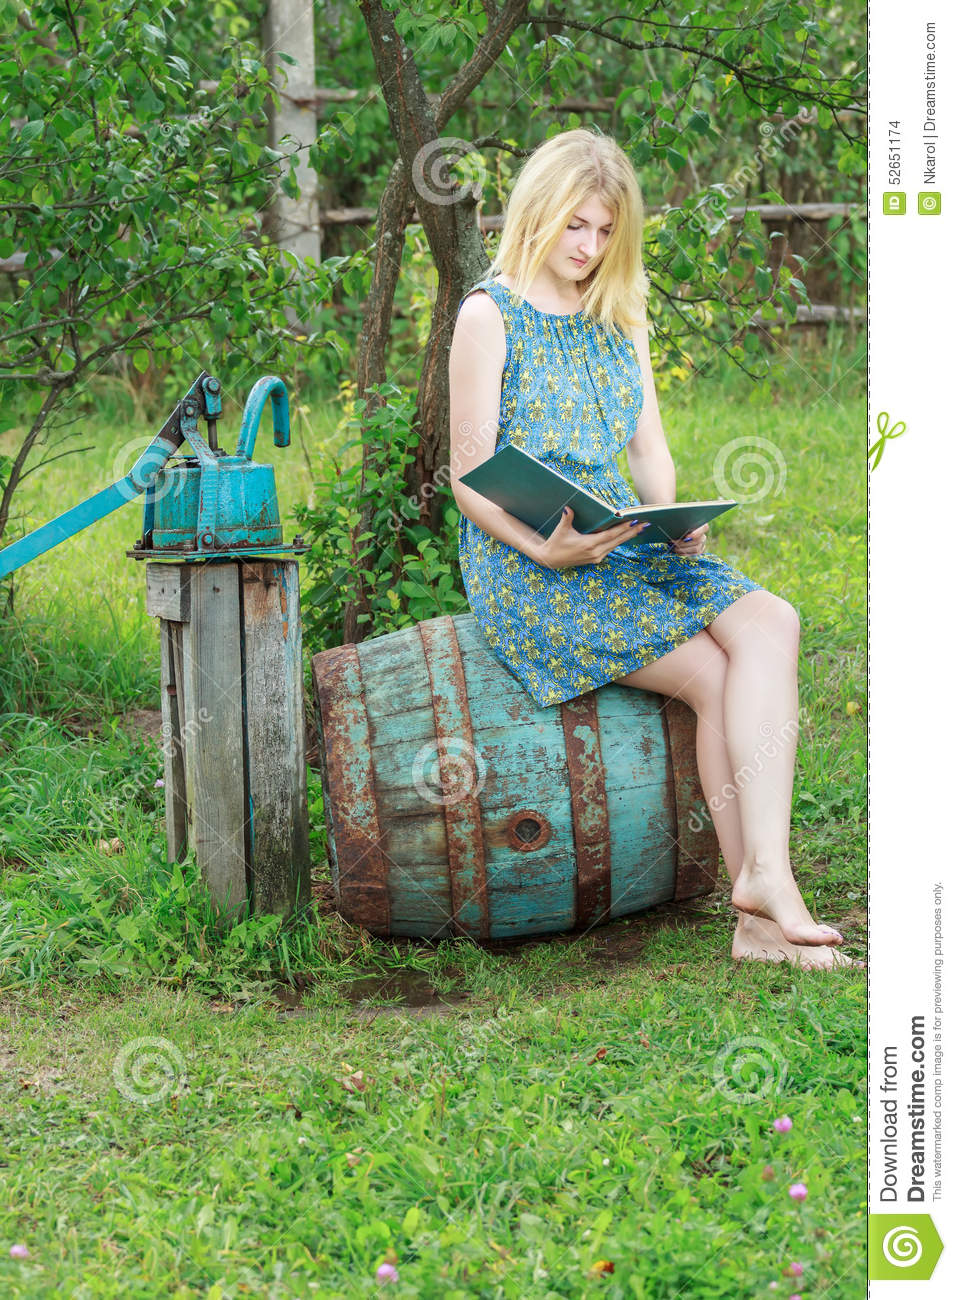 https://thumbs.dreamstime.com/z/barefoot-student-girl-blue-silk-feminine-dress-reading-book-summer-52651174.jpg